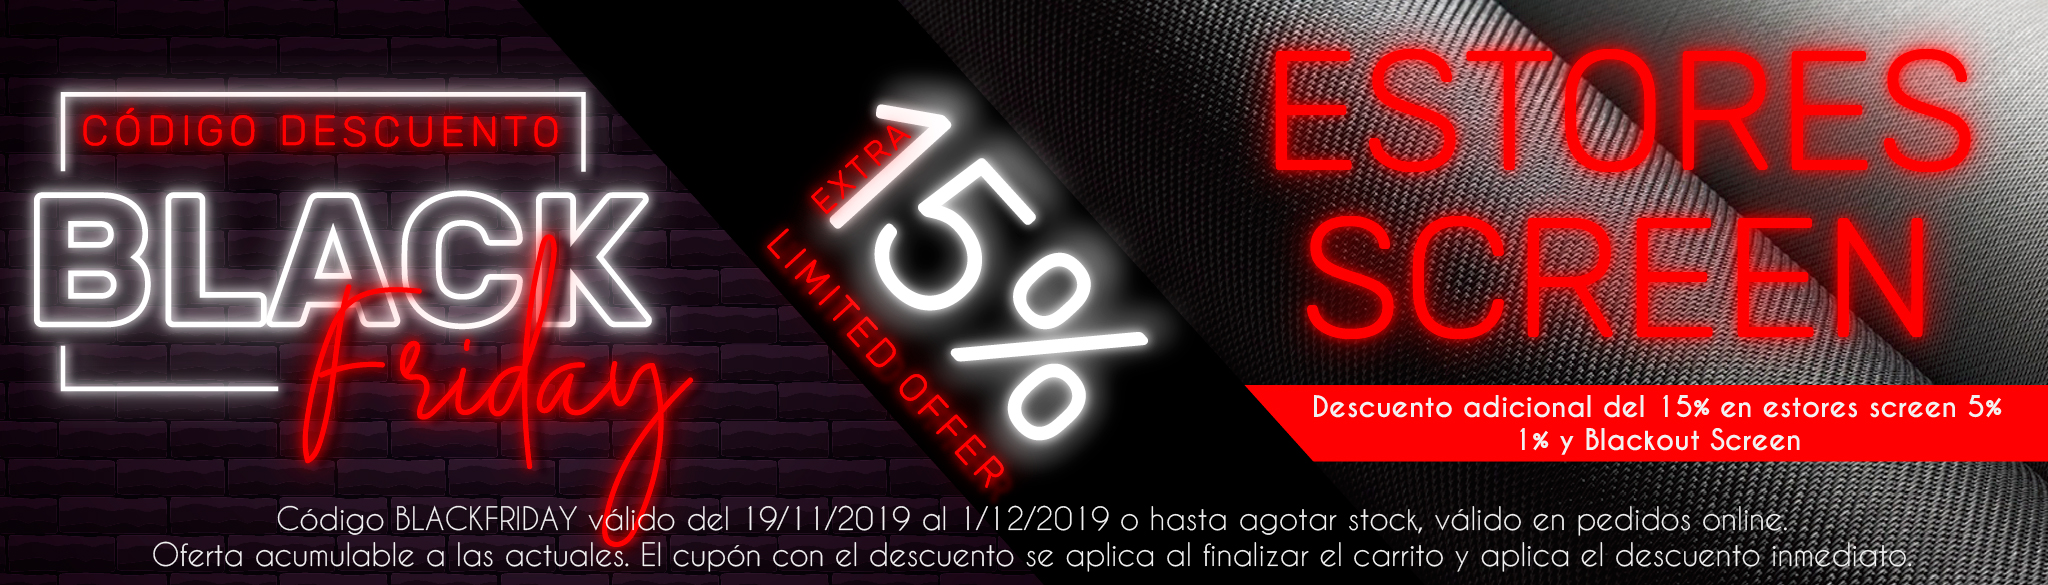 Promocion de estores black friday